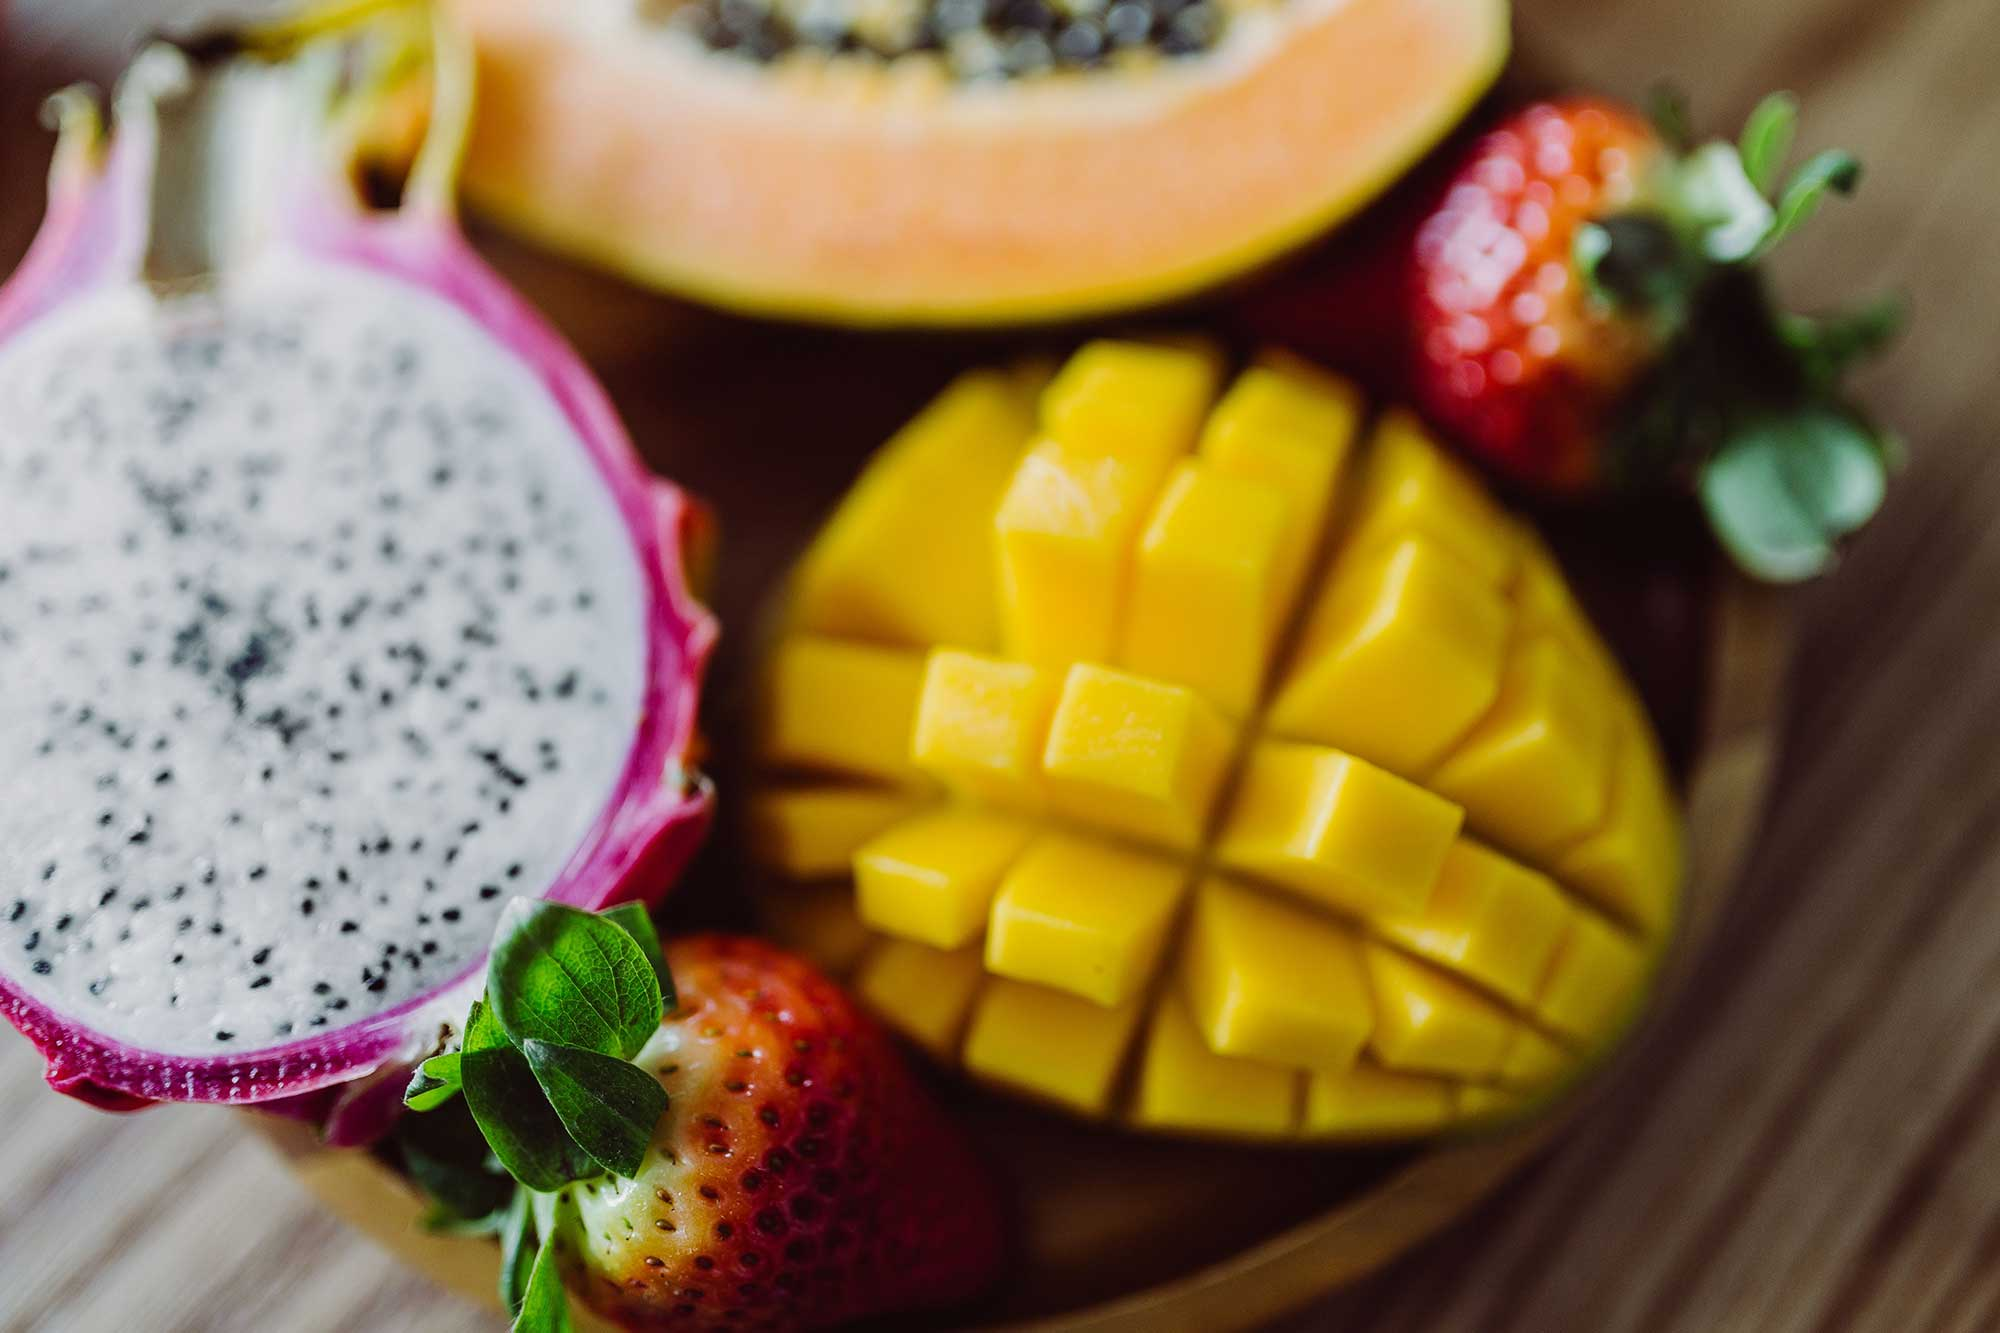 kaboompics_Exotic-fruits-on-a-wooden-table